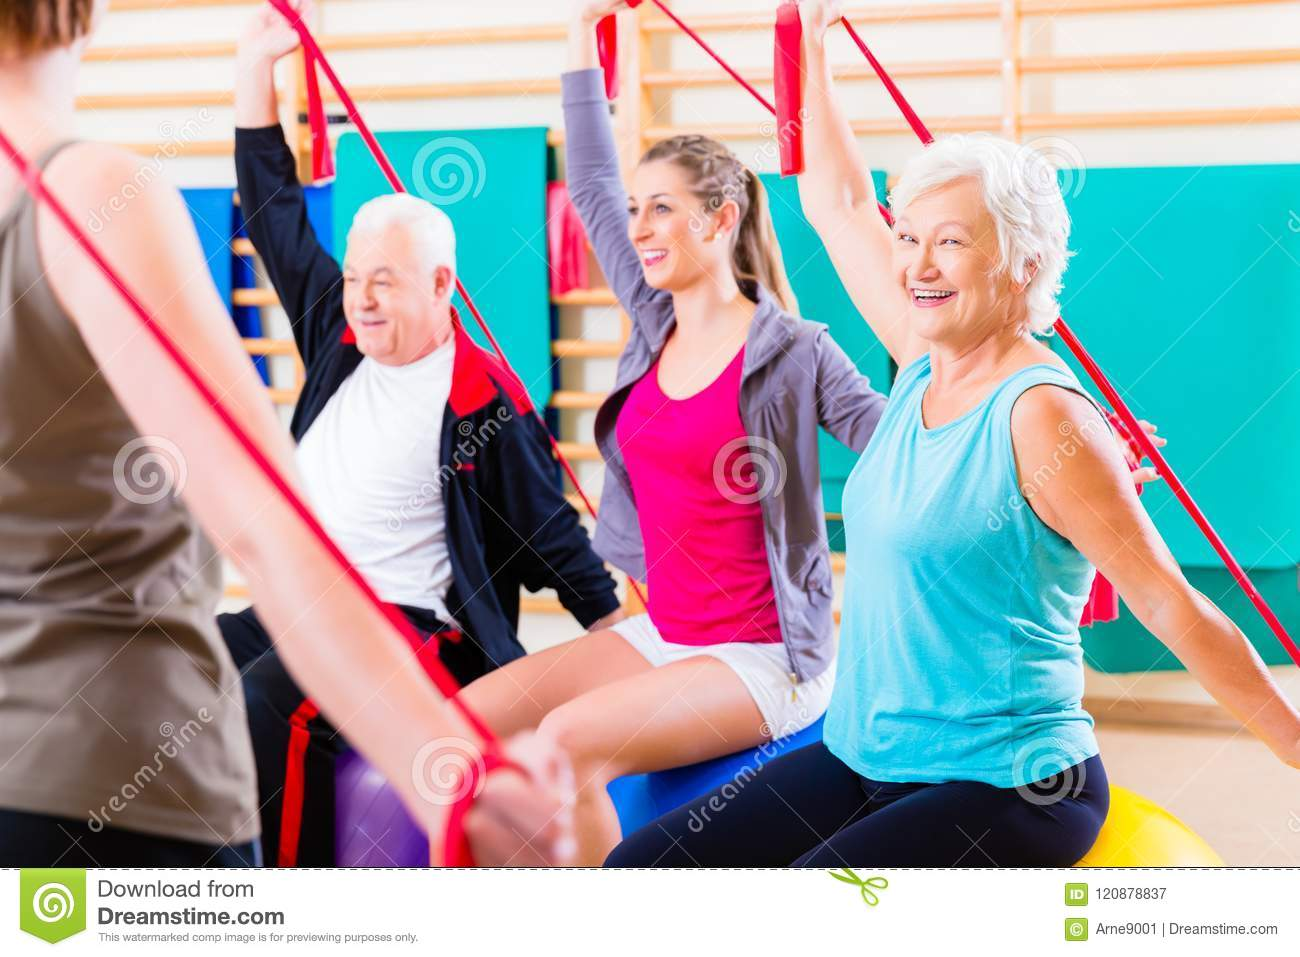 Senior People At Fitness Course In Gym Stock Image - Image of group